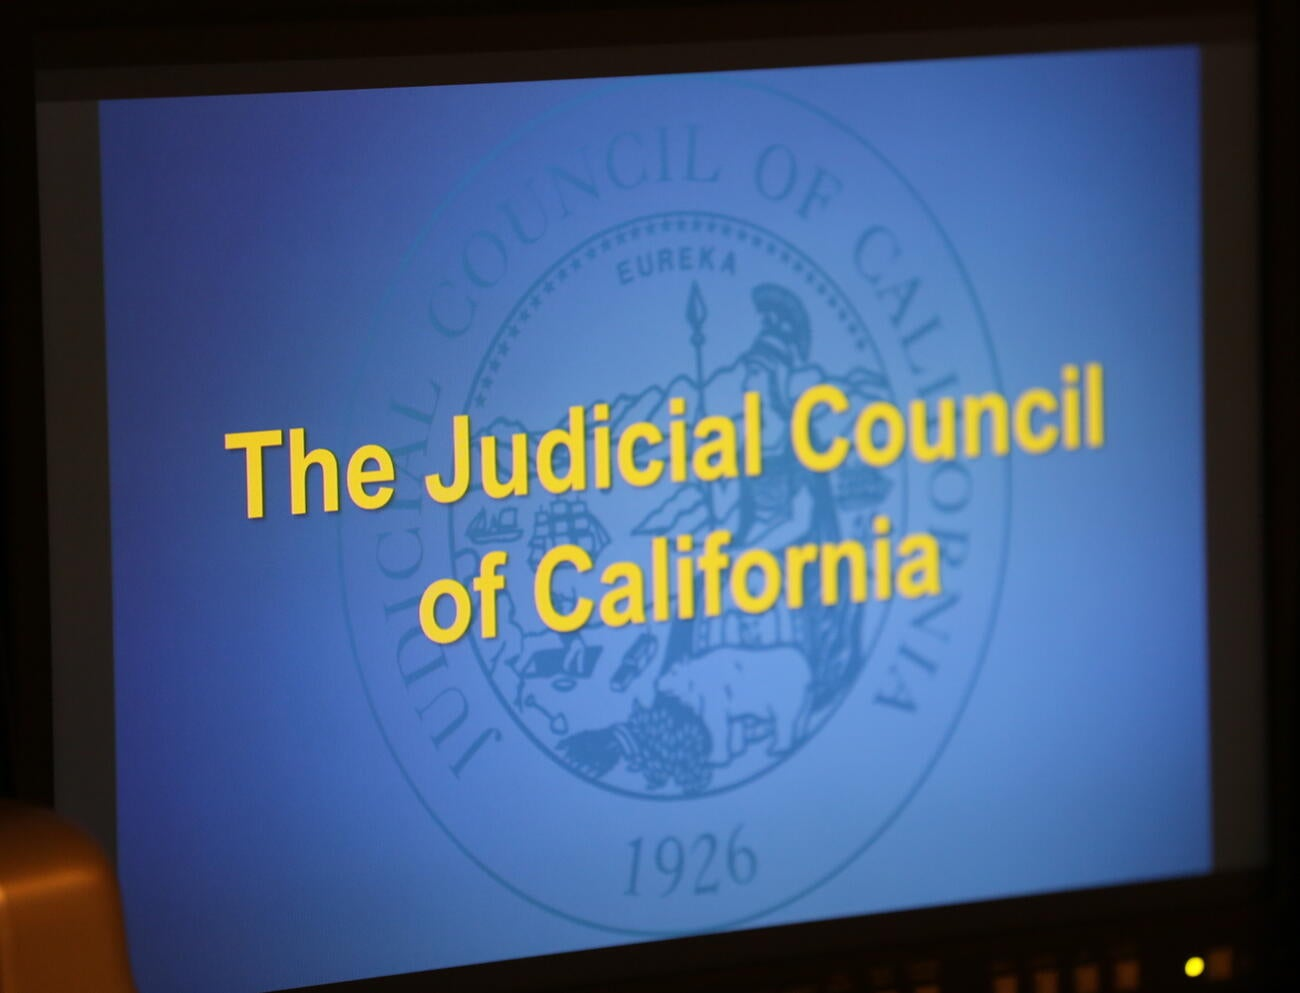 Judicial Council Title text on teleprompter